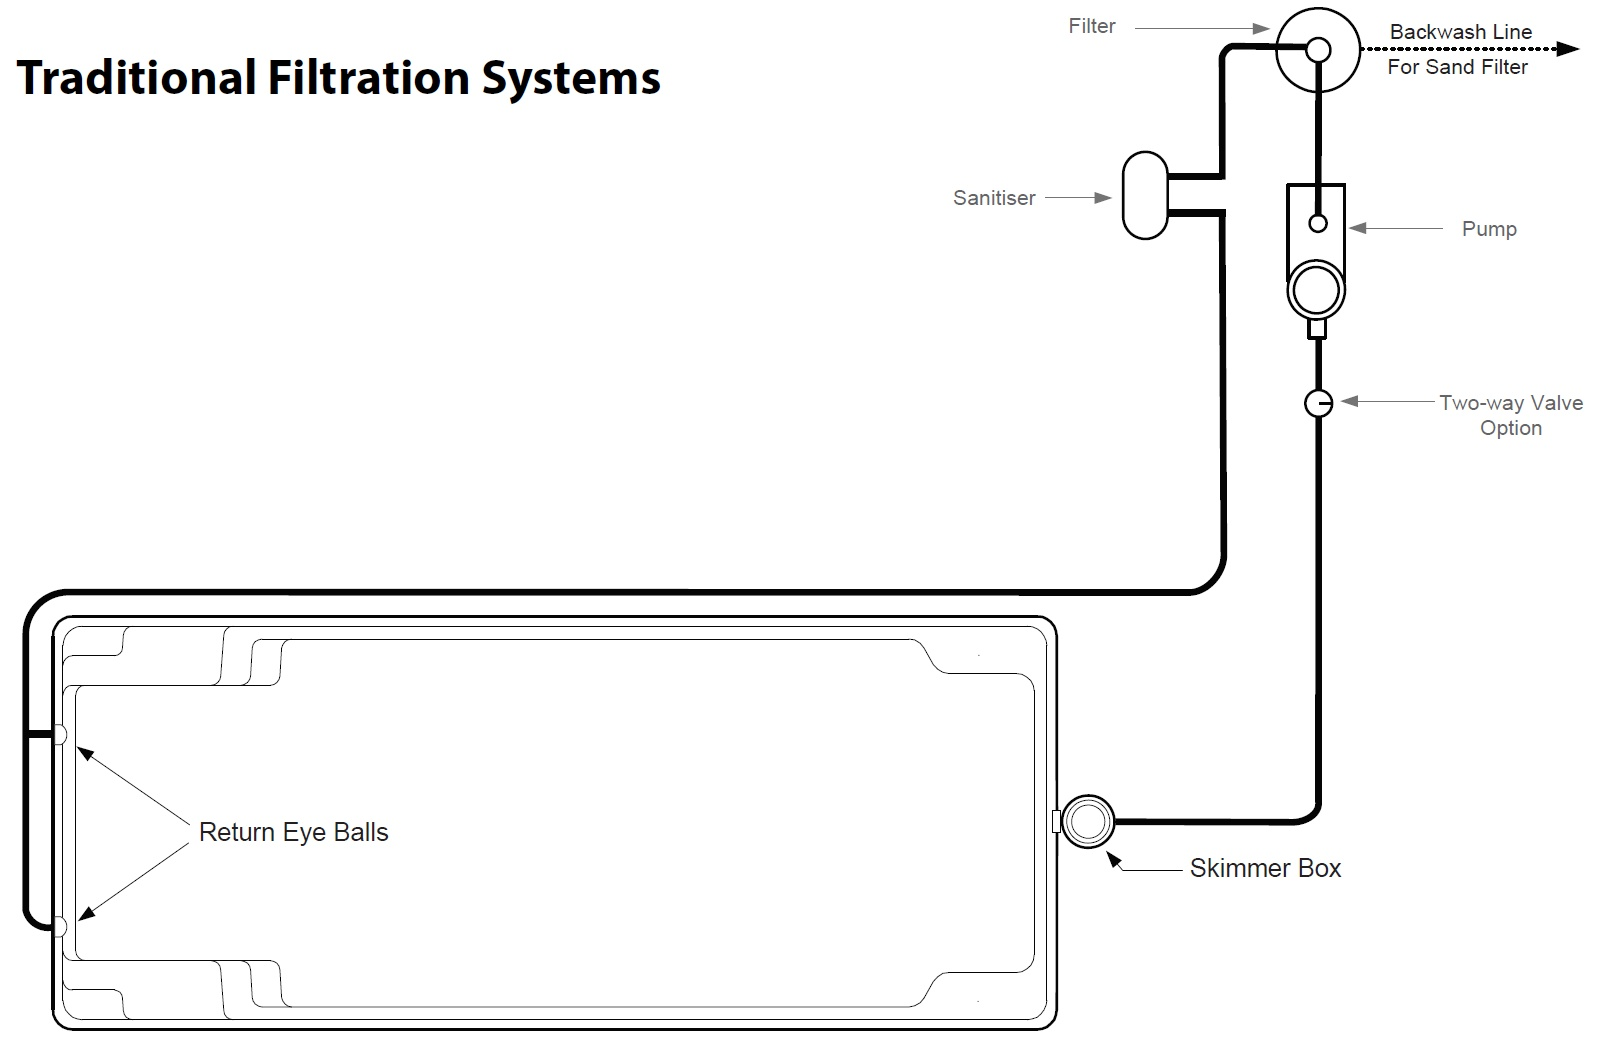 Traditional filtration systems